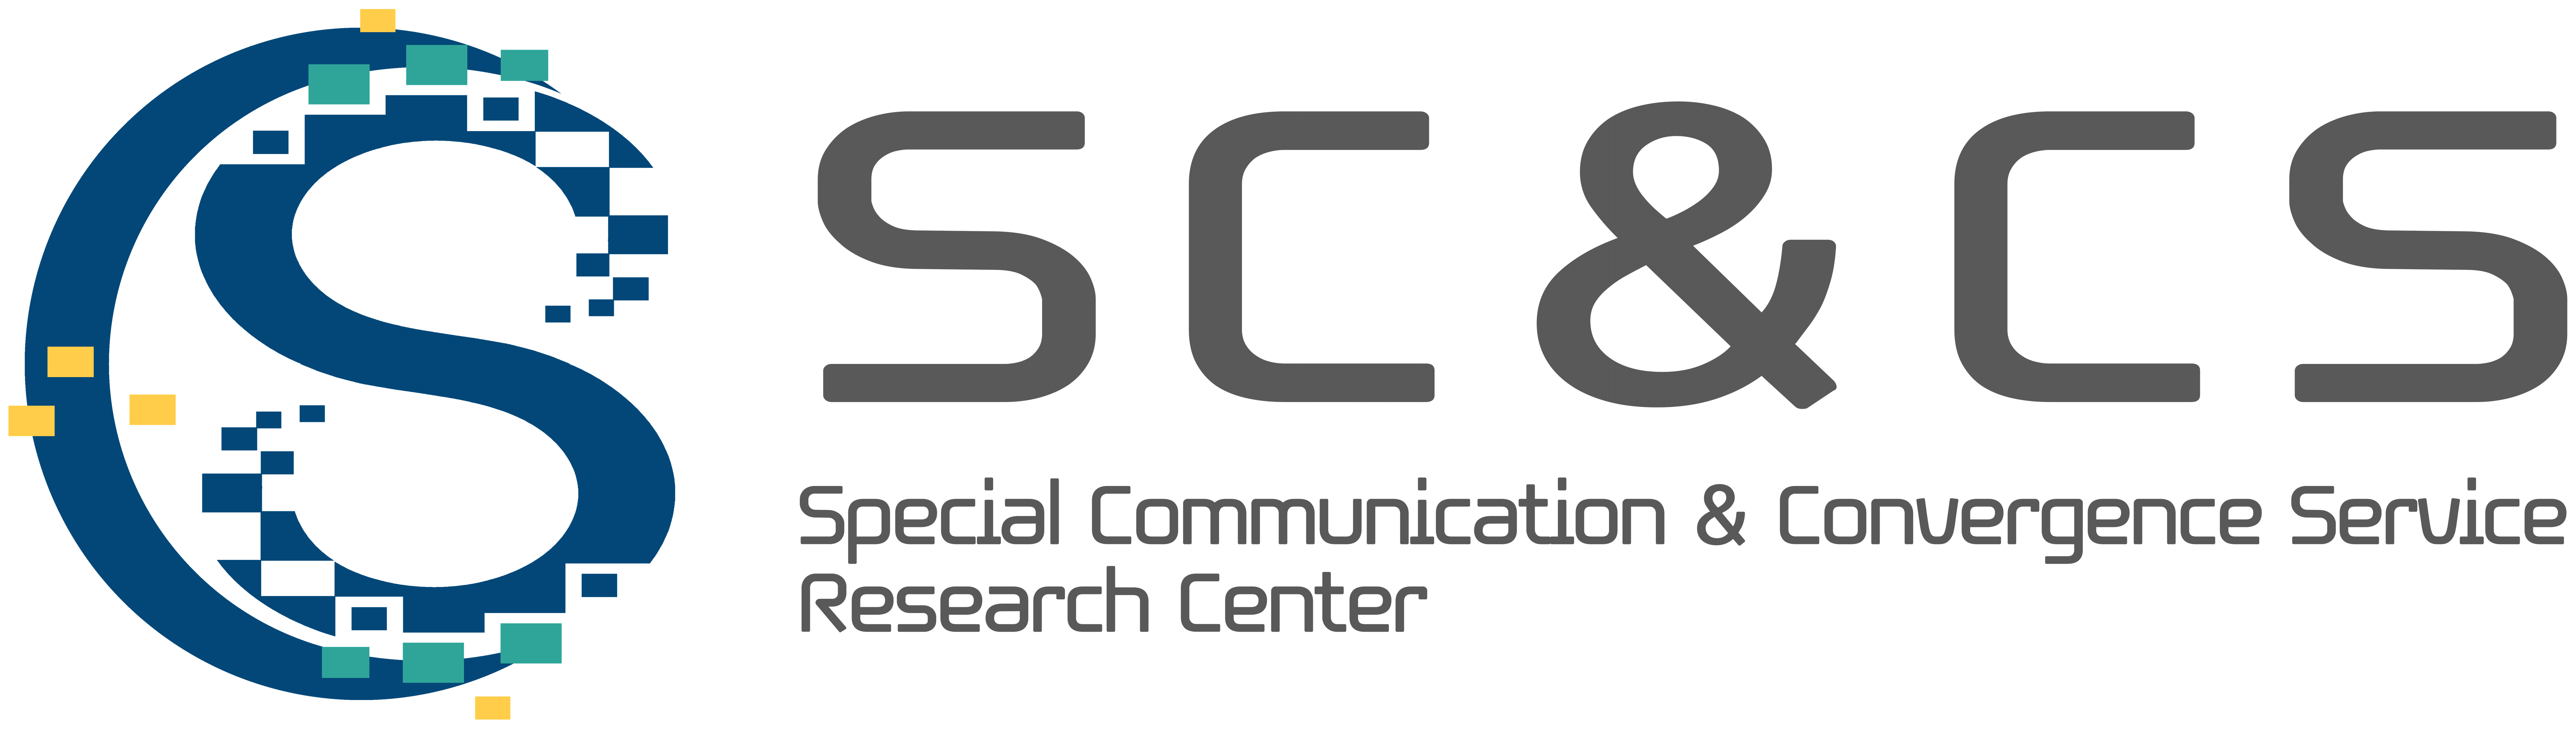 Special Communication Research center